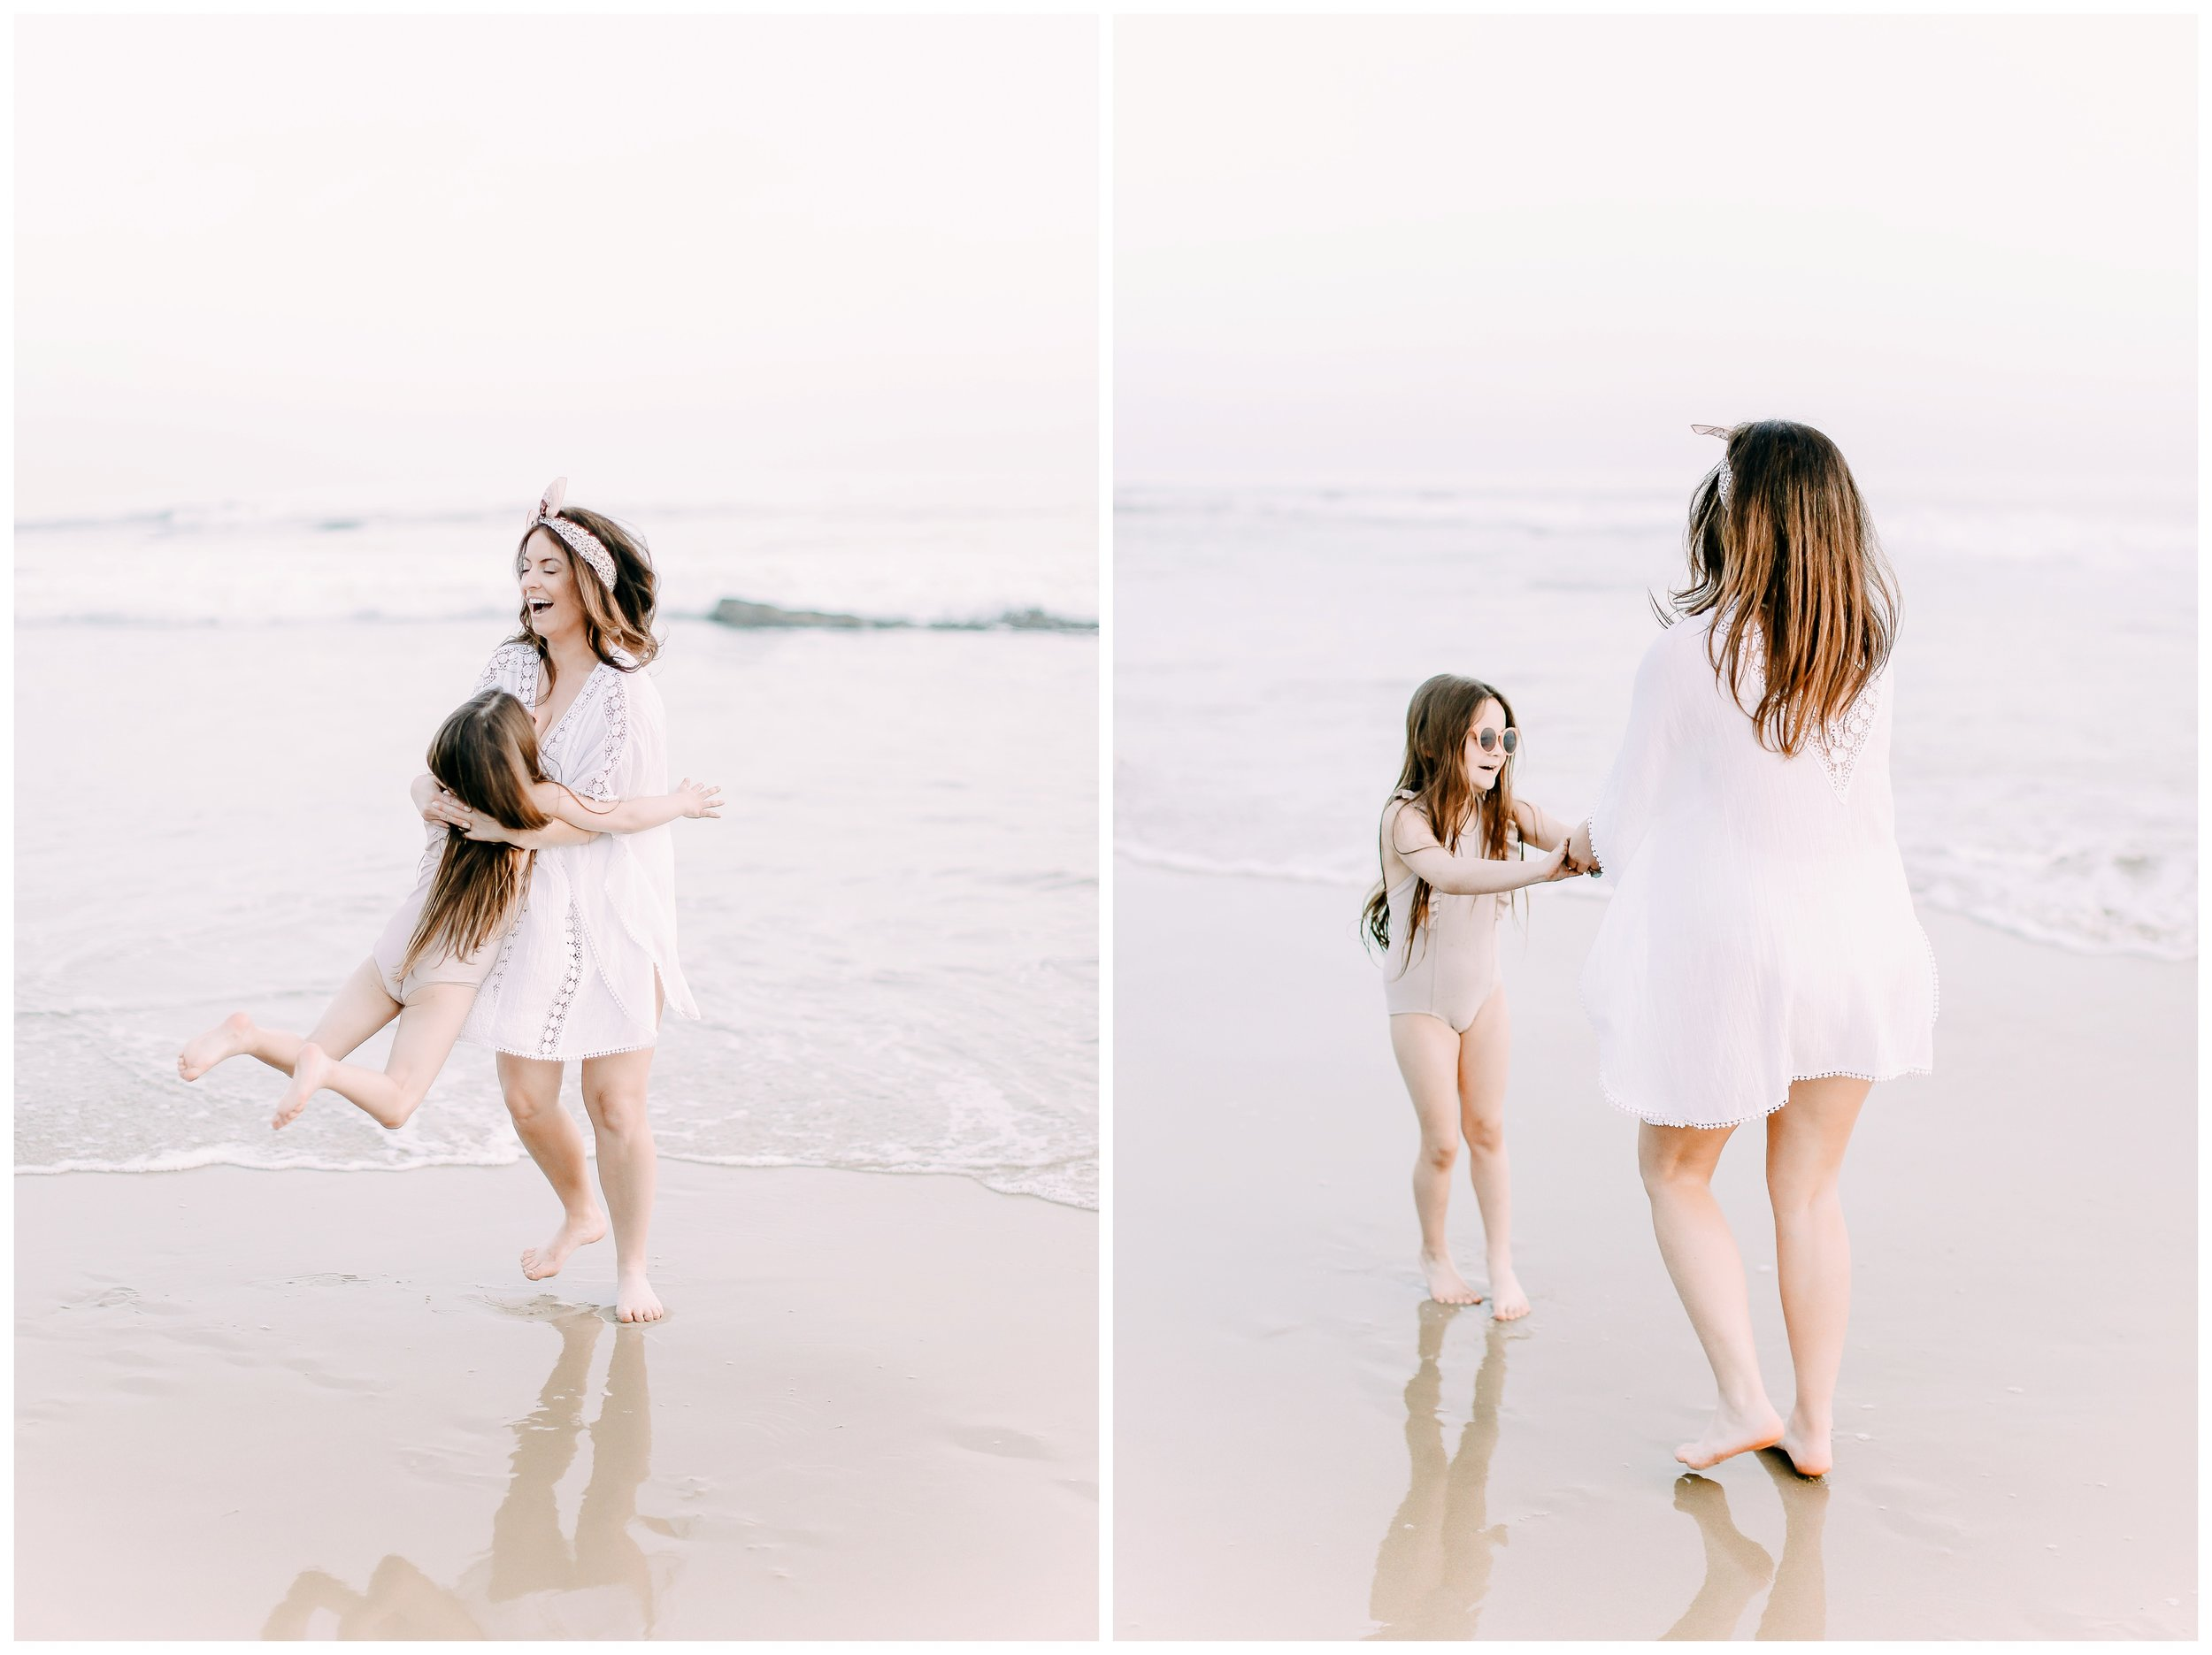 Crystal-Cove-State-Beach-Motherhood- Session-Crystal-Cove-Newport-Beach-Family-Photographer-Crystal-Cove-Minnow-Swim-Cori-Kleckner-Photography-Orange-County-Vacation-Family-Photos-Session-_0853.jpg